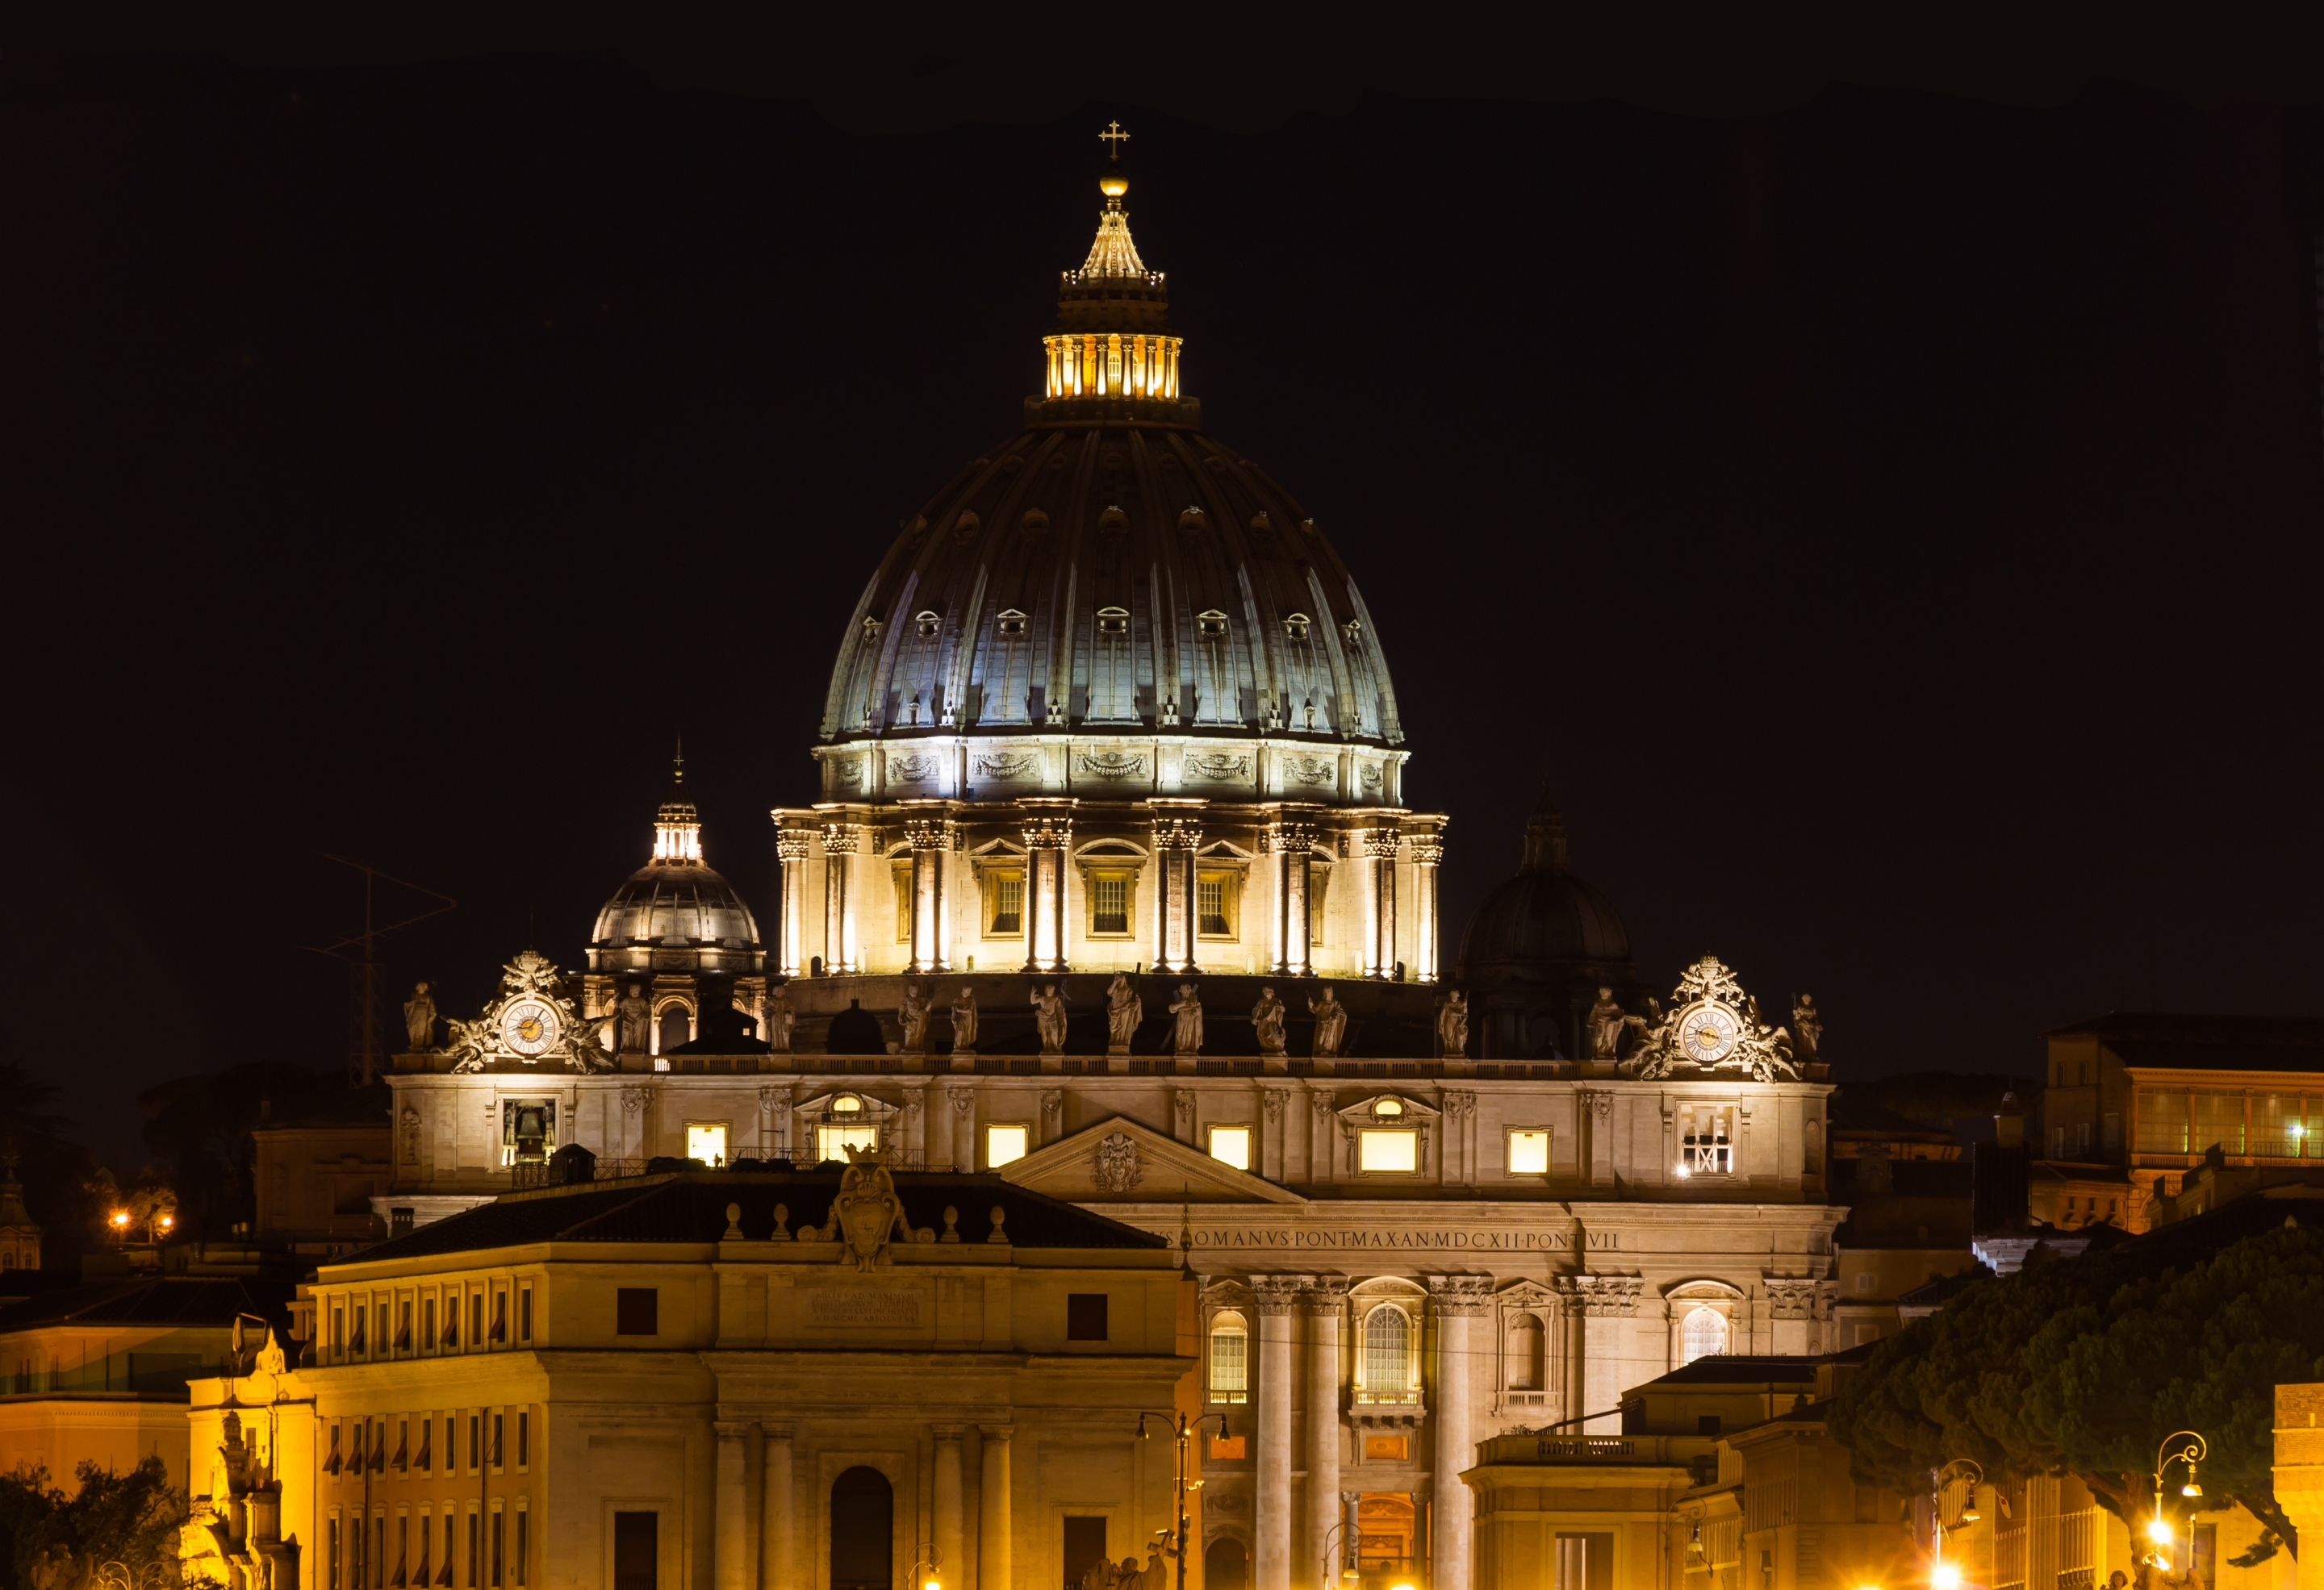 Free download high resolution image - free image free photo free stock image public domain picture -Night view at St. Peter's cathedral in Rome, Italy